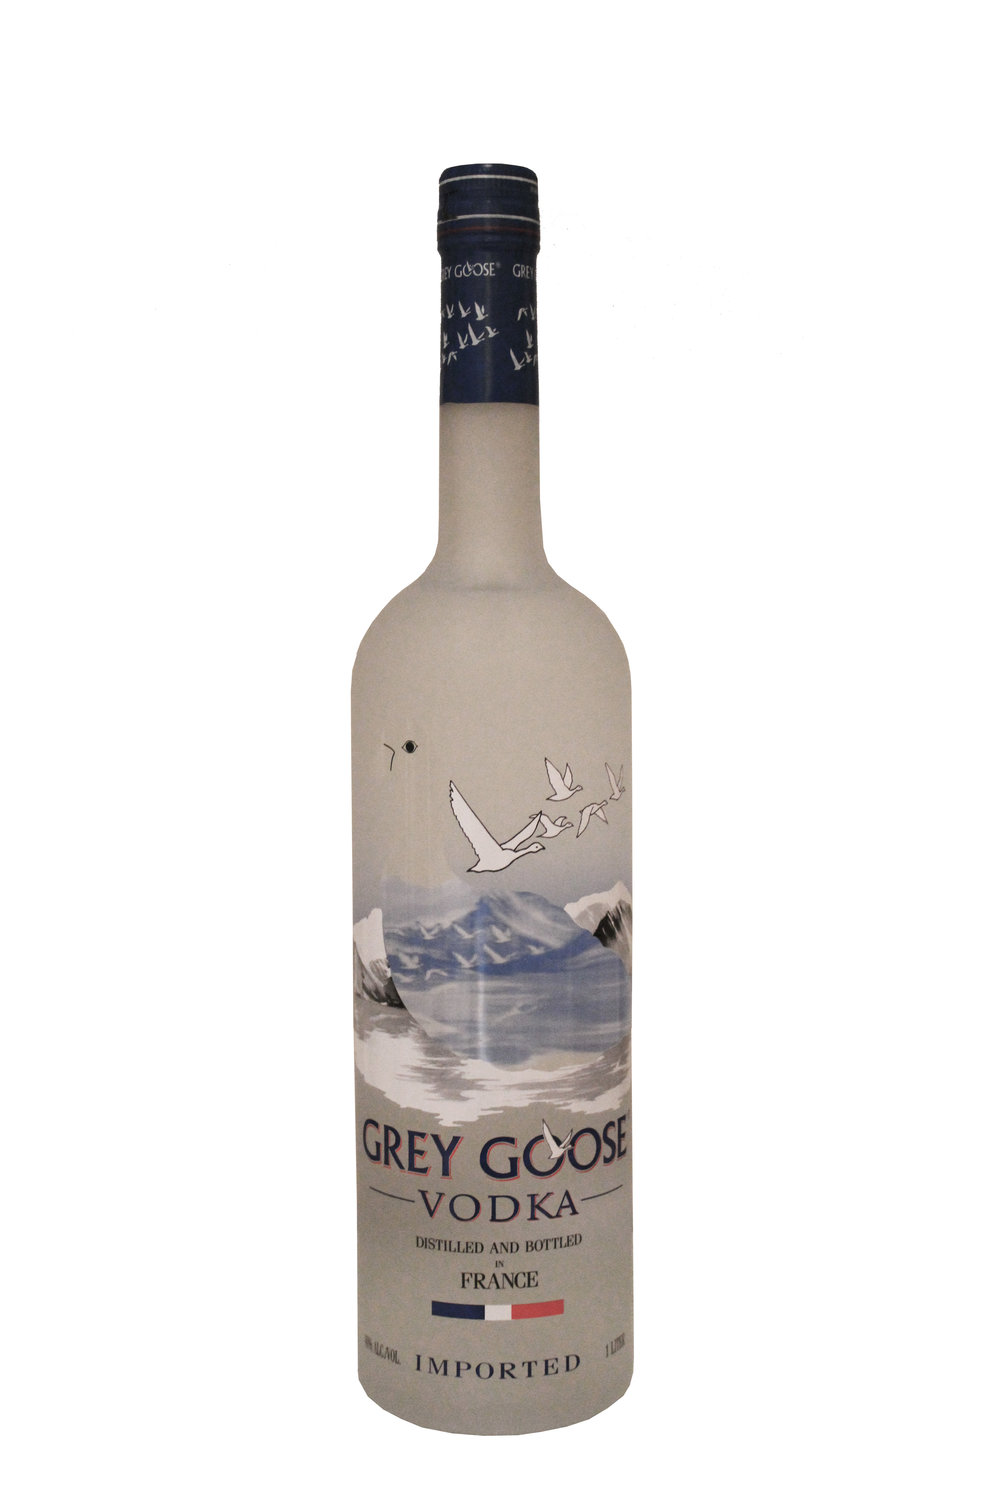 Premium Imported Vodka  Grey Goose,  France